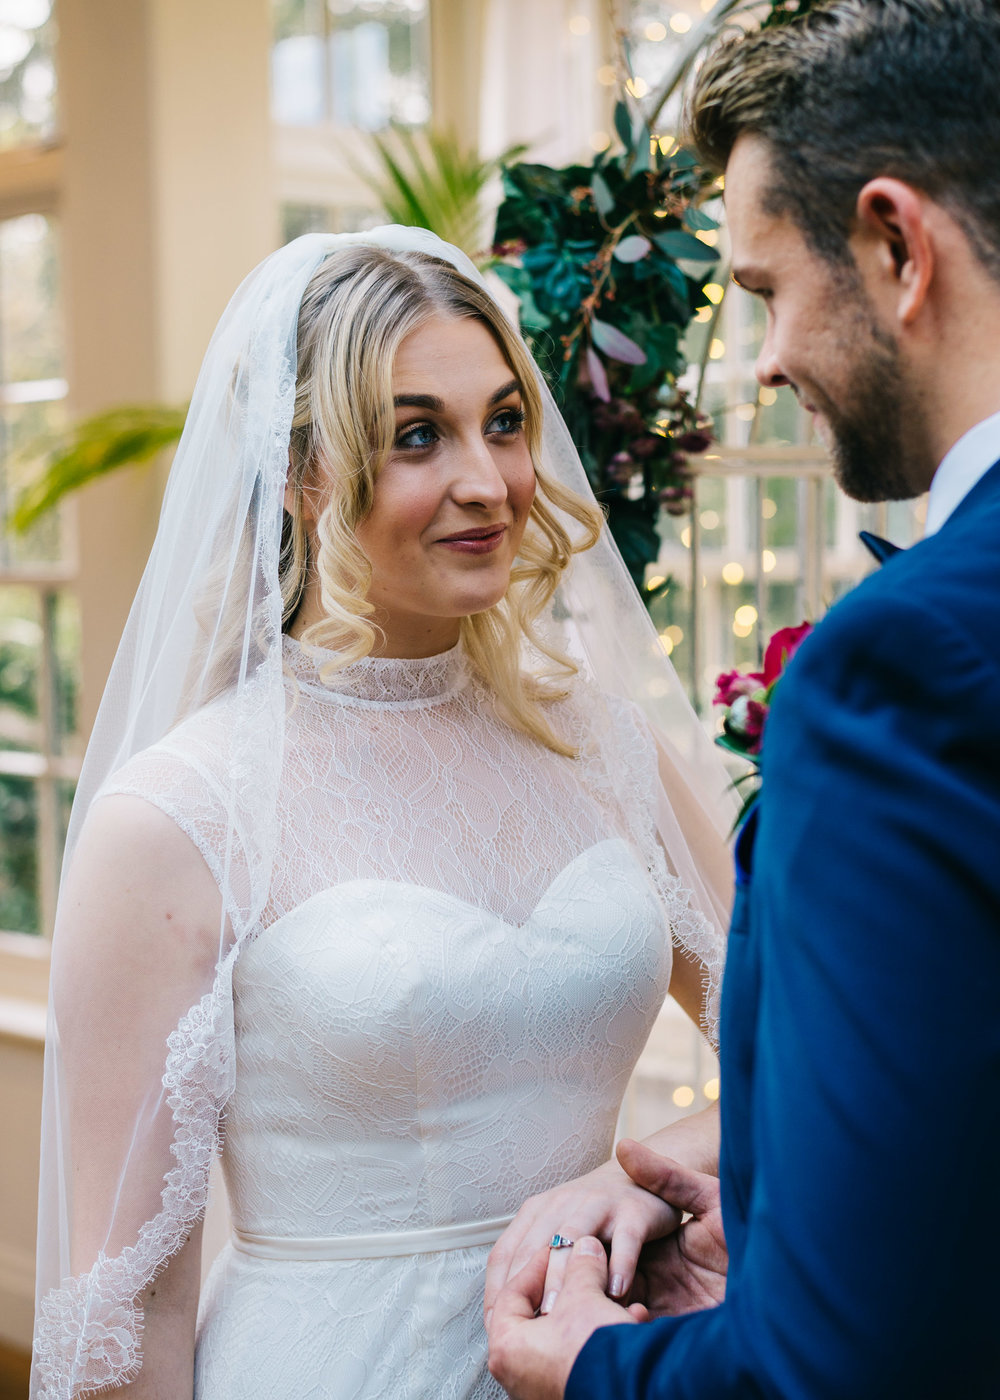 Mitton Hall Wedding Photography- Laura Duggleby Photographer3